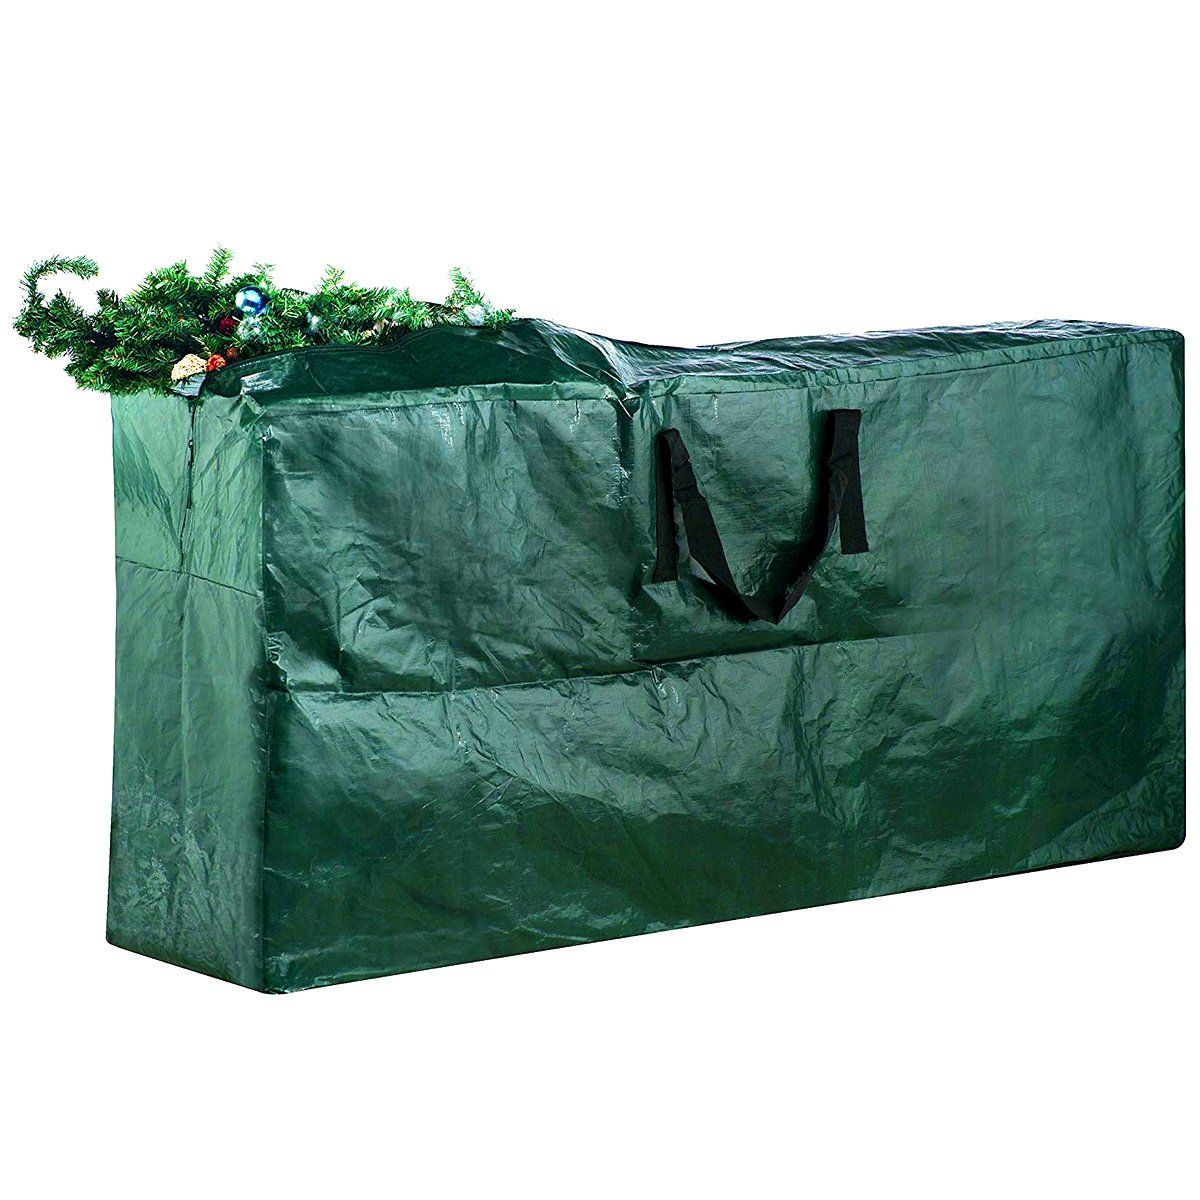 Christmas Tree Storage Bin Endearing Christmas Tree Storage Bag Tree Storage Container Holiday Garland Or Inspiration